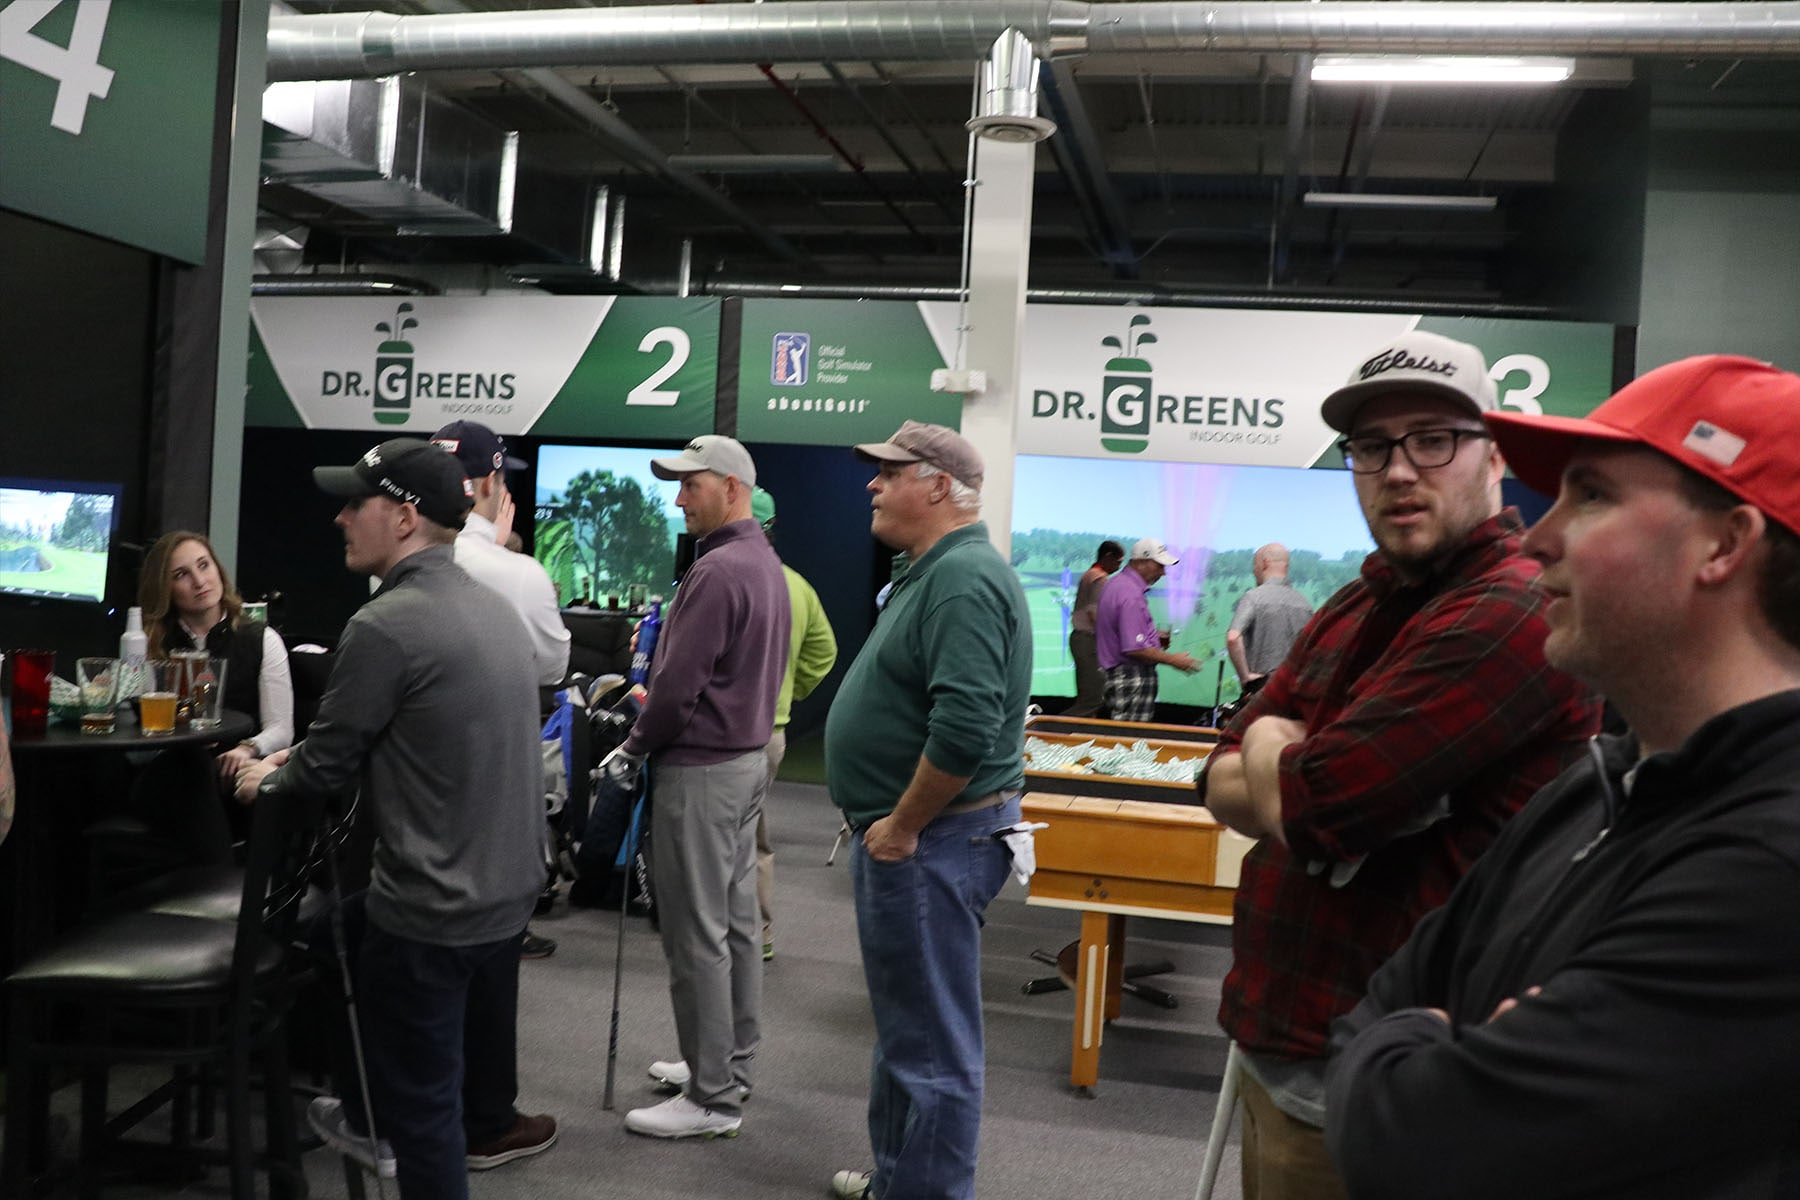 Thanks to everyone who joined us at Dr. Greens in...